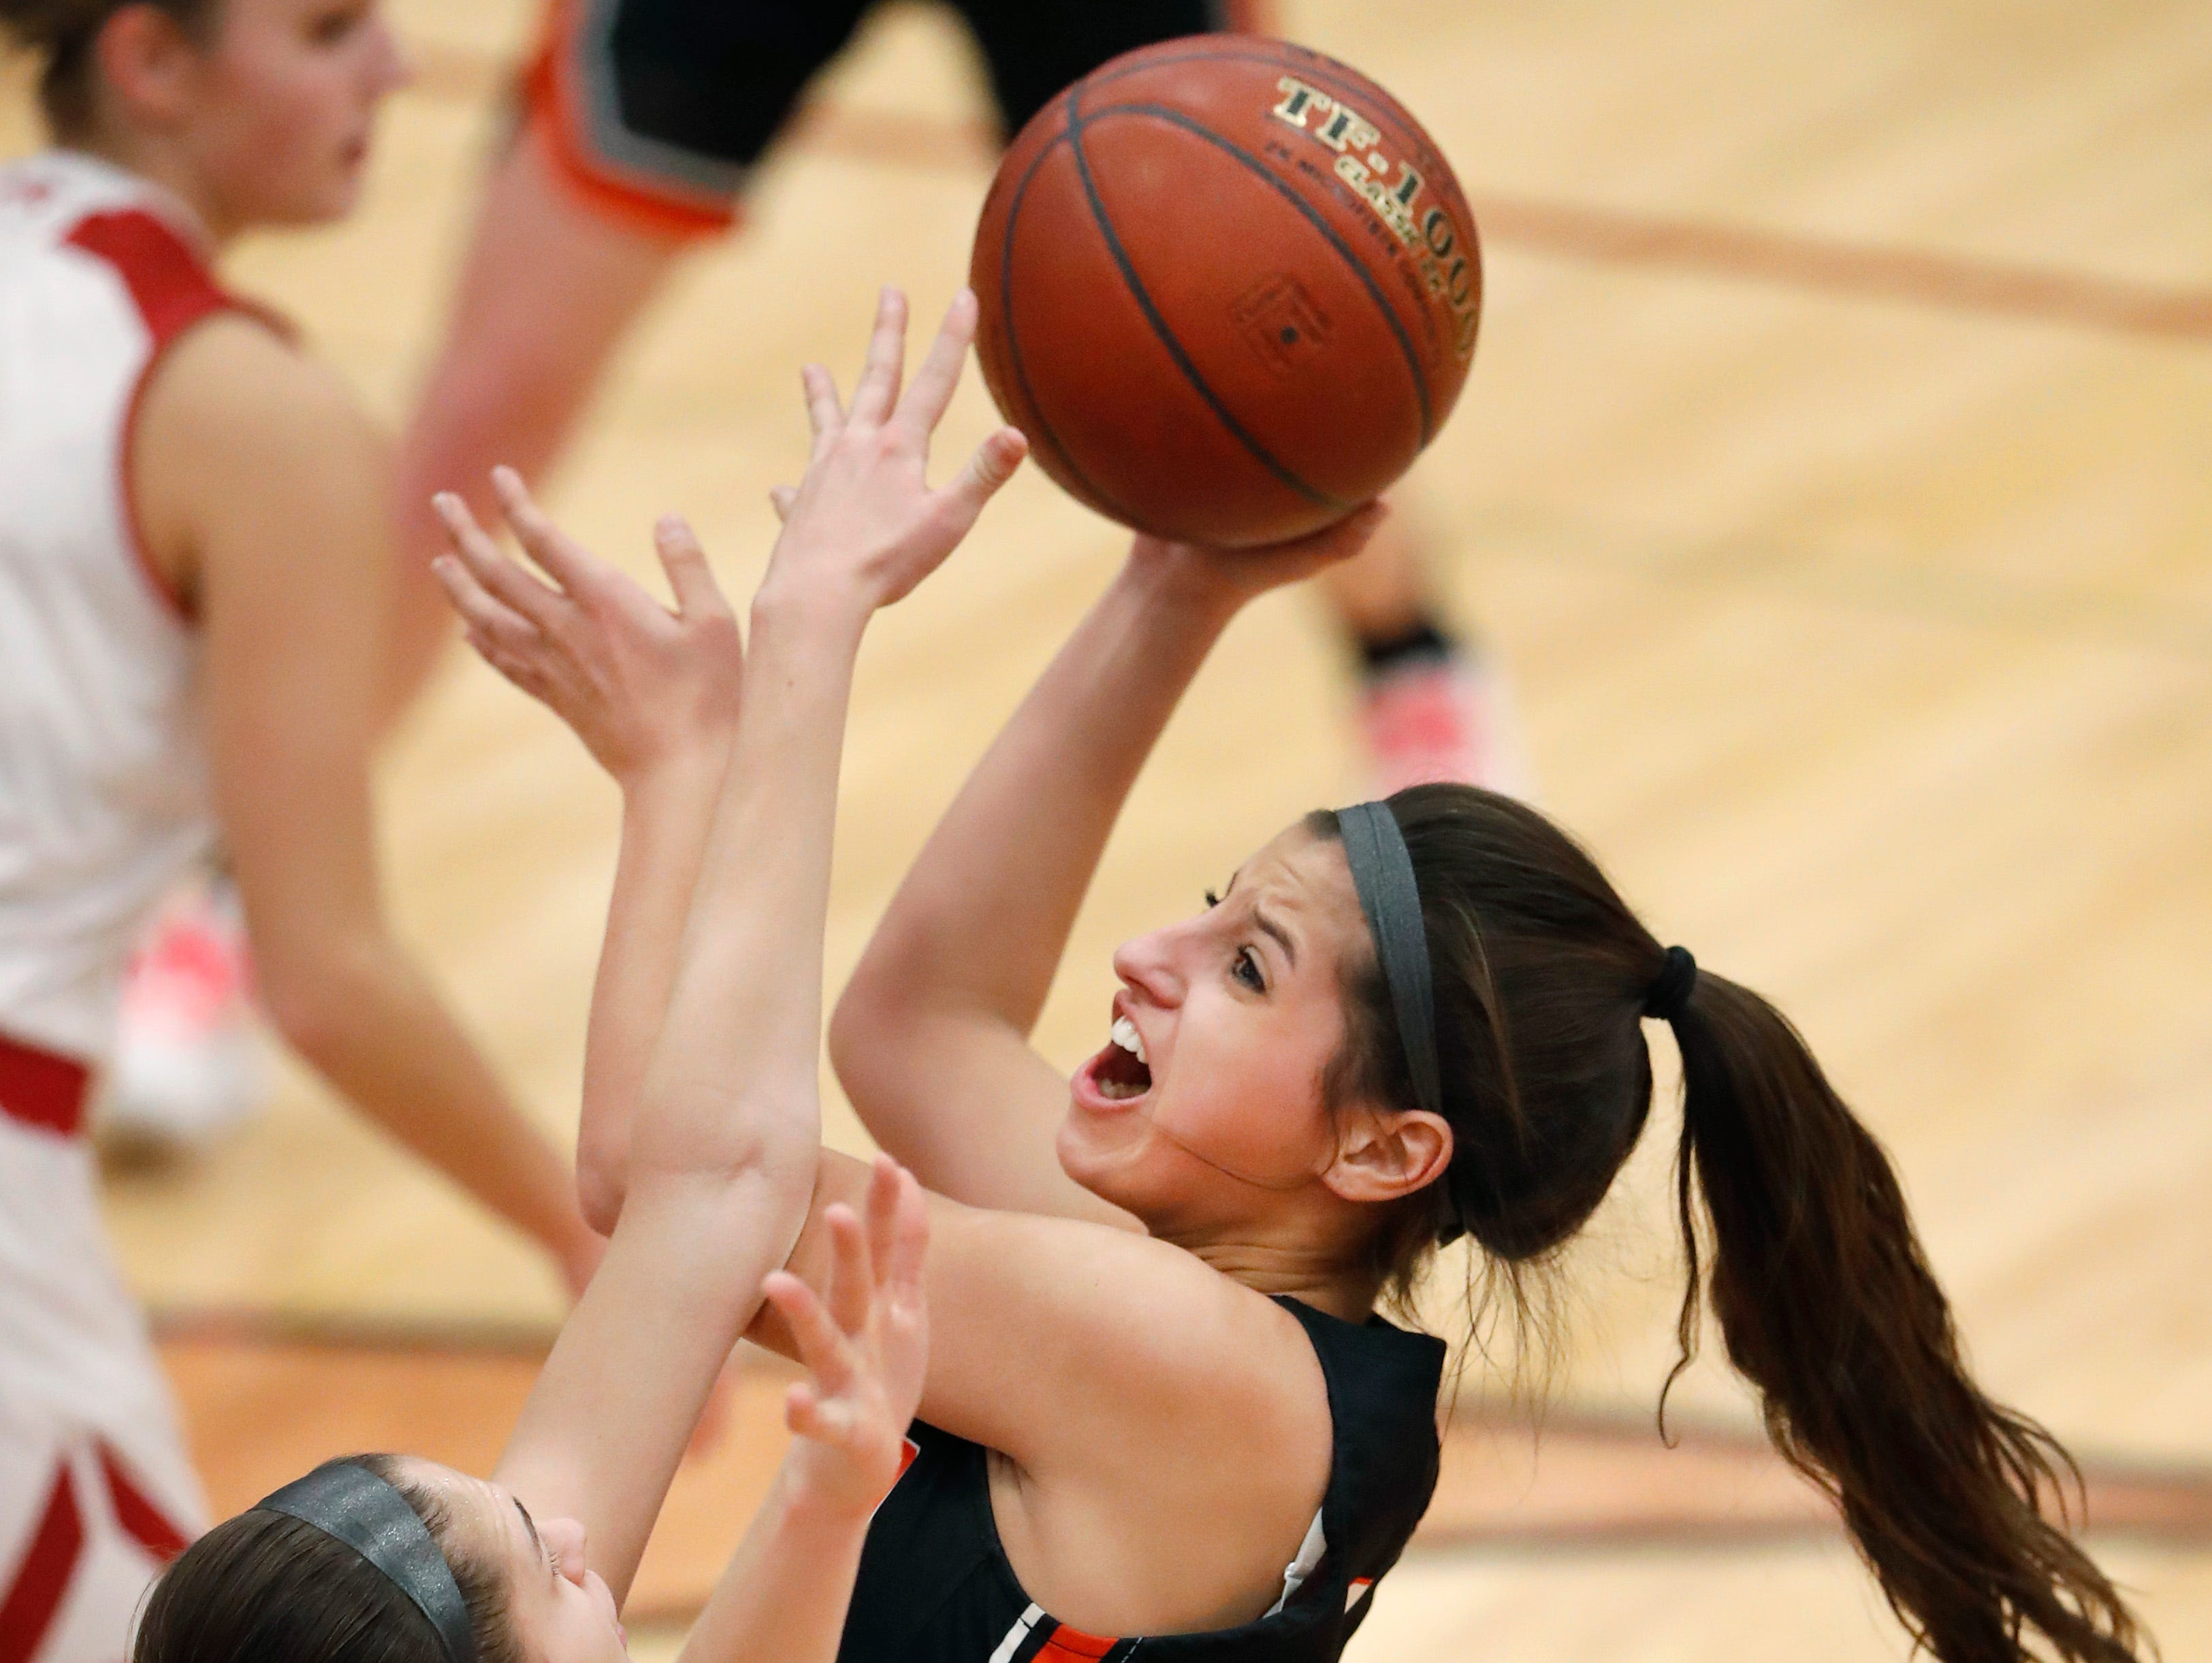 Kimberly High School's Bryn Sikora tries to block a shot from Kaukauna High School's Sutten Ebben Friday, Dec. 7, 2018, in Kimberly, Wis. Kimberly High School defeated Kaukauna High School 70-55.